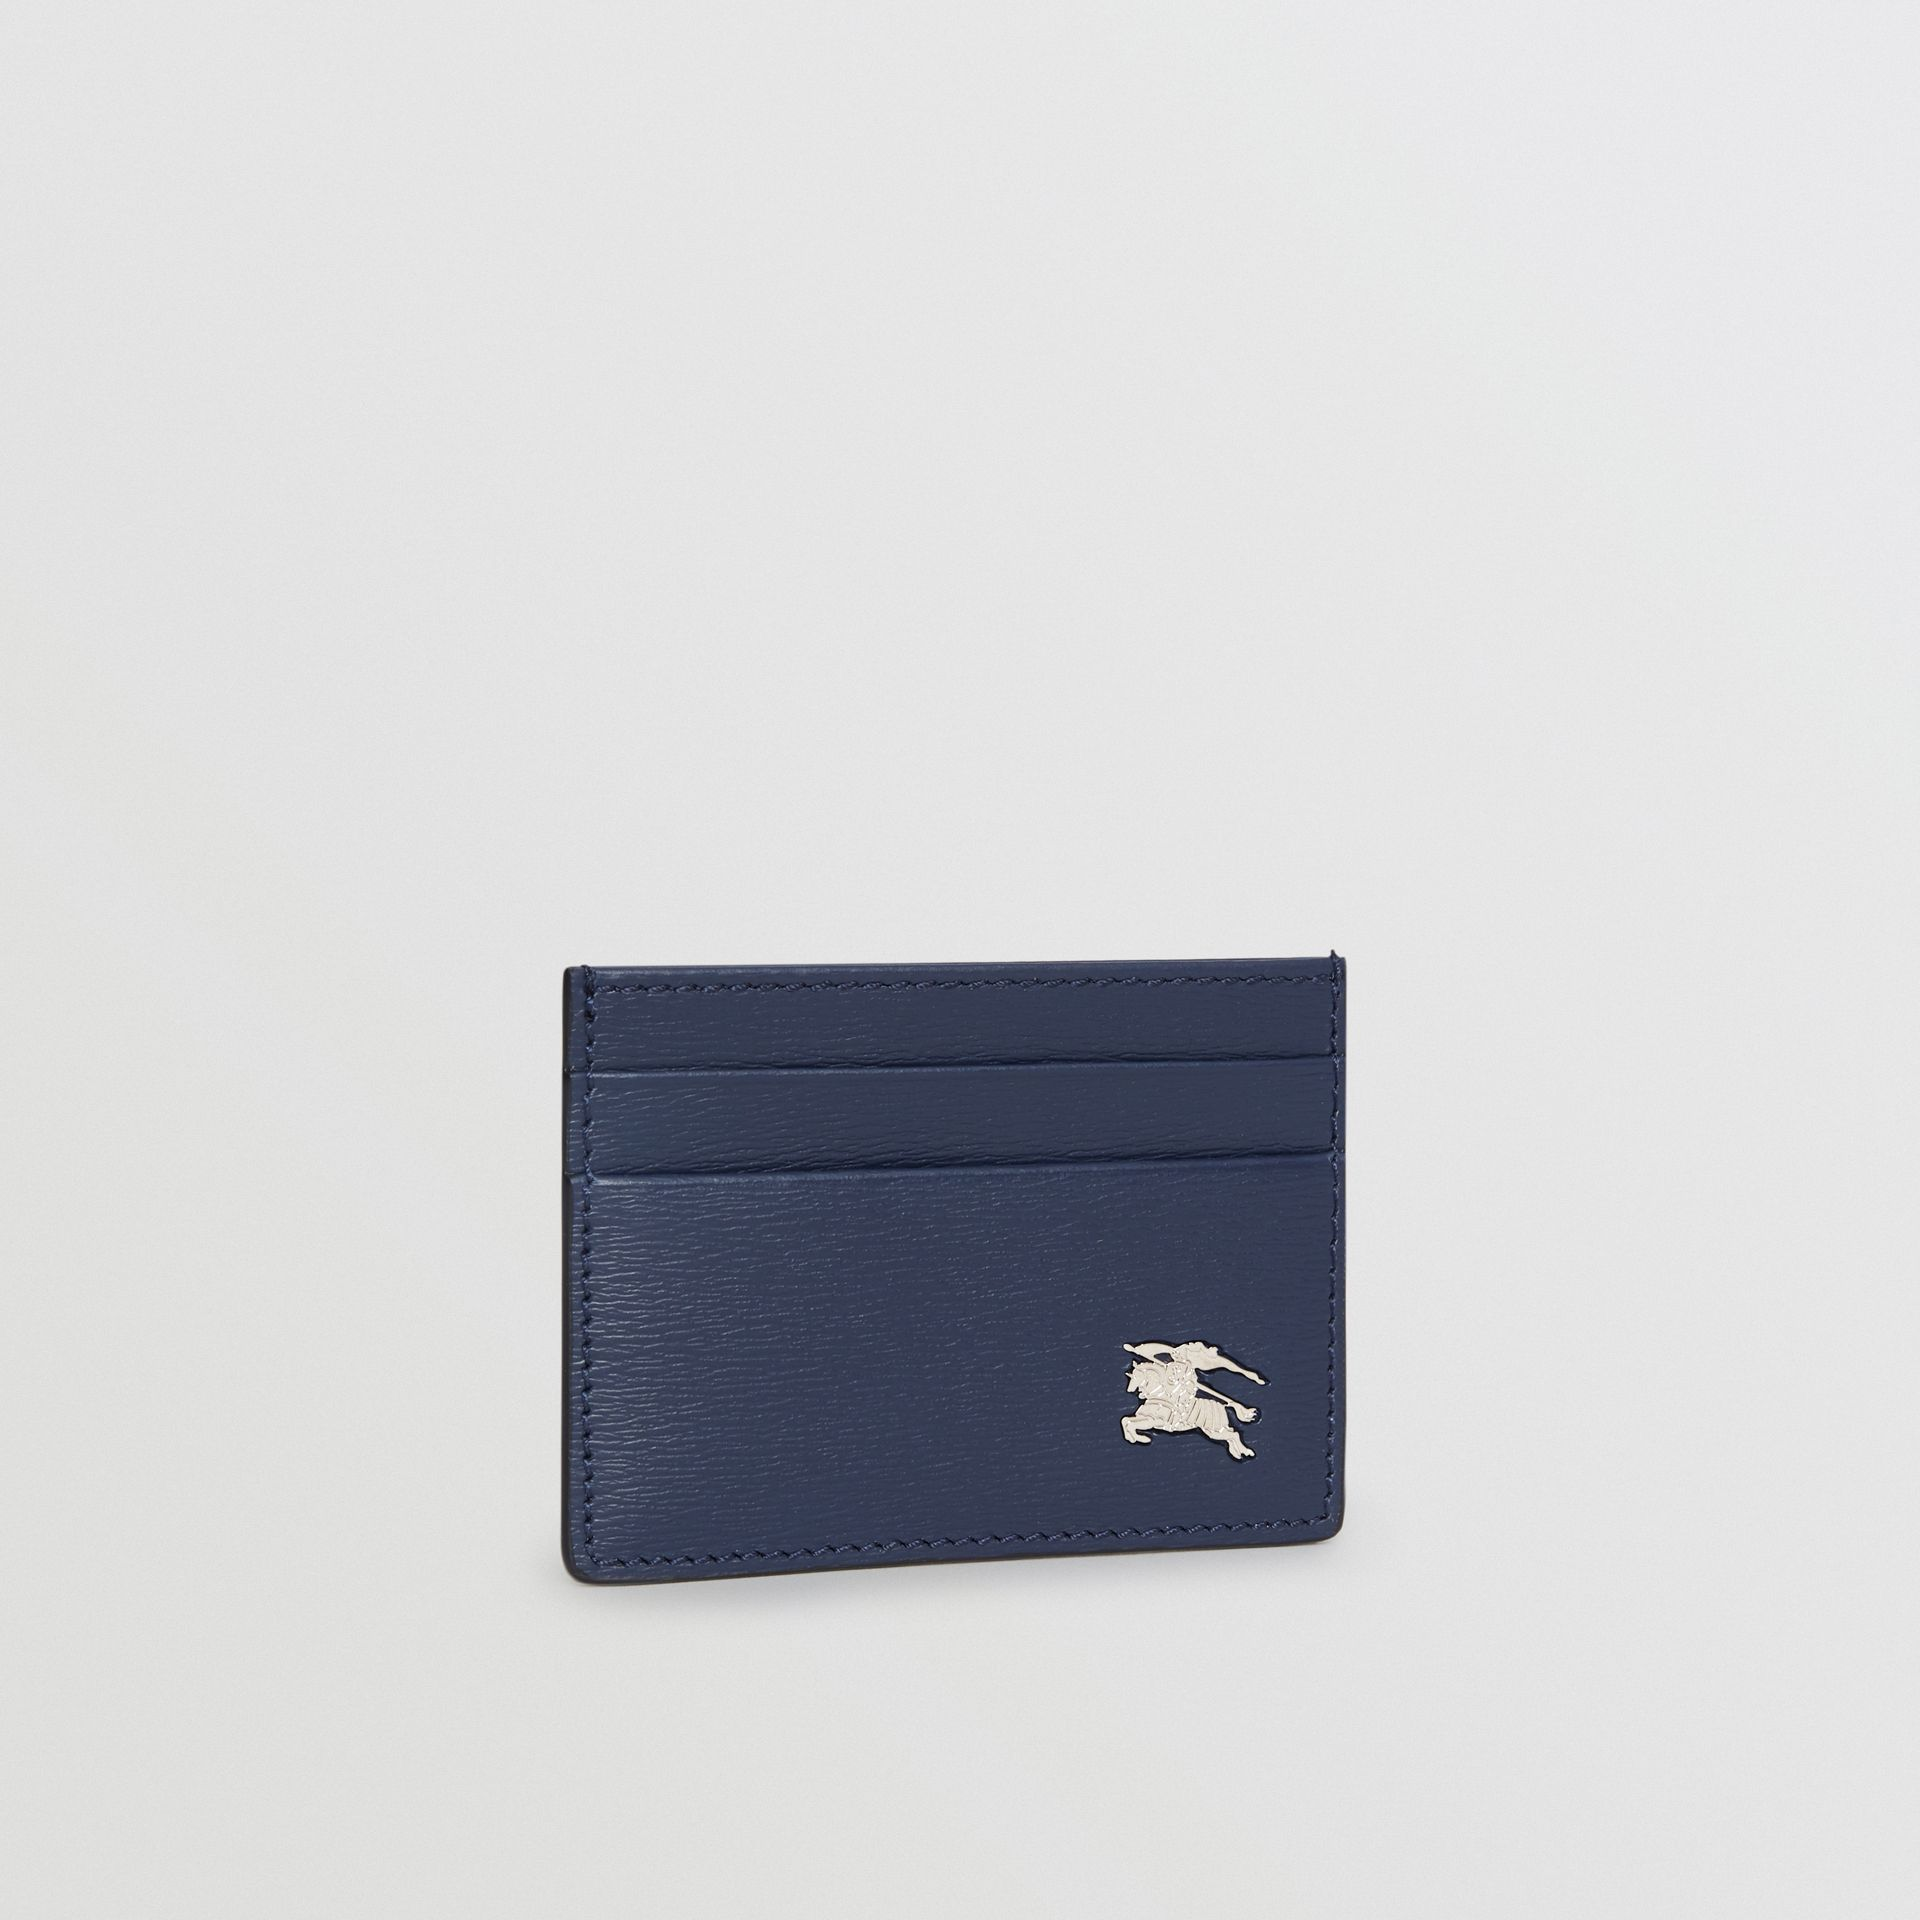 London Leather Card Case in Navy - Men | Burberry Canada - gallery image 3